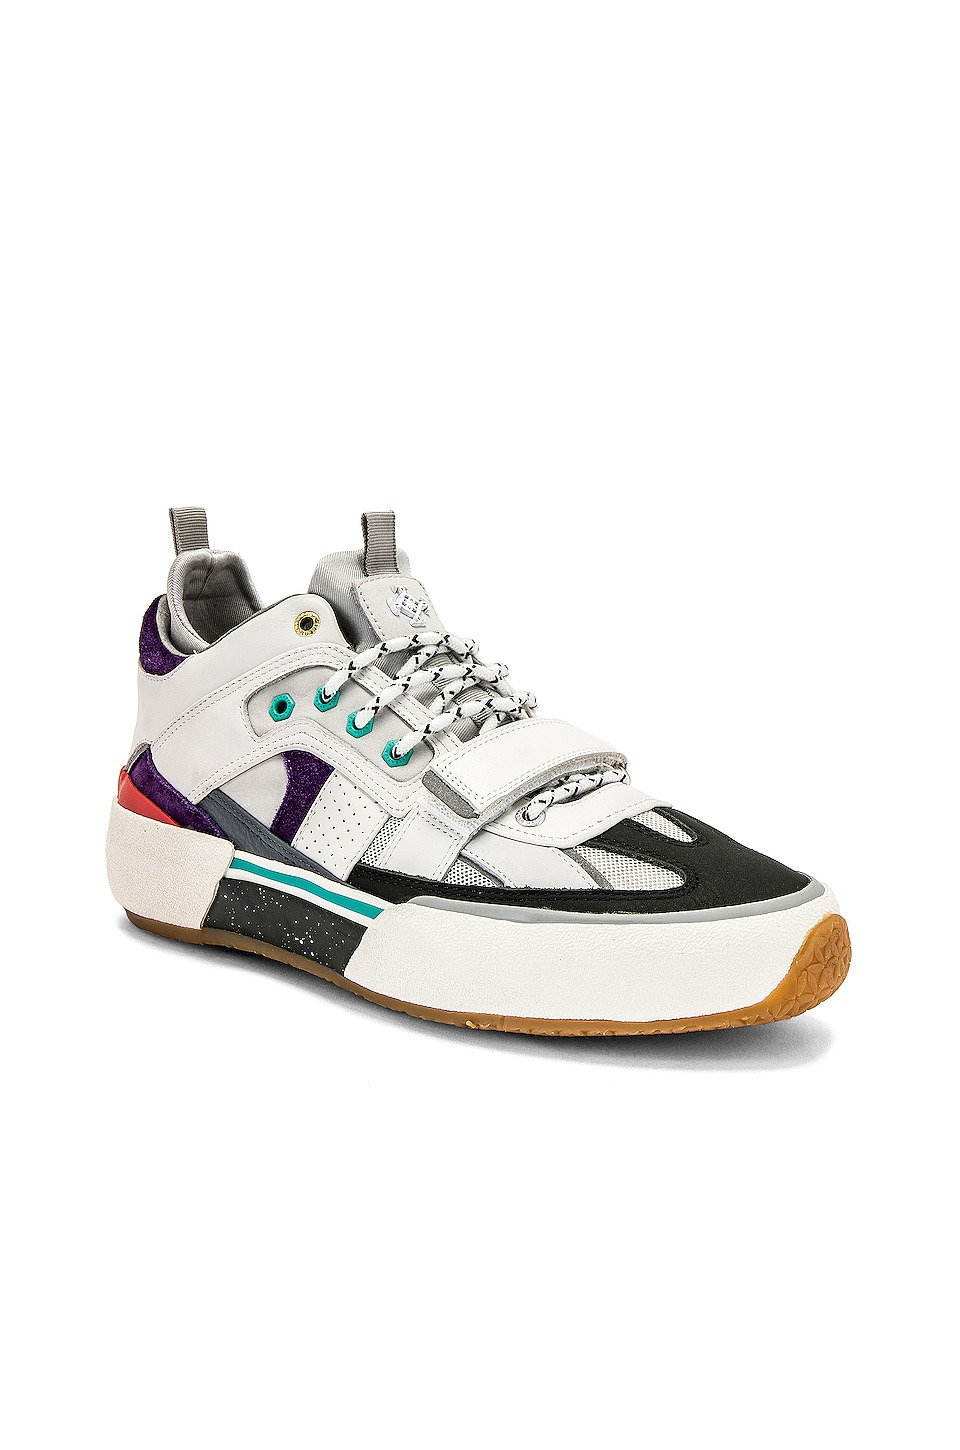 Stratica International Broadway Ralley Trainer in Multi